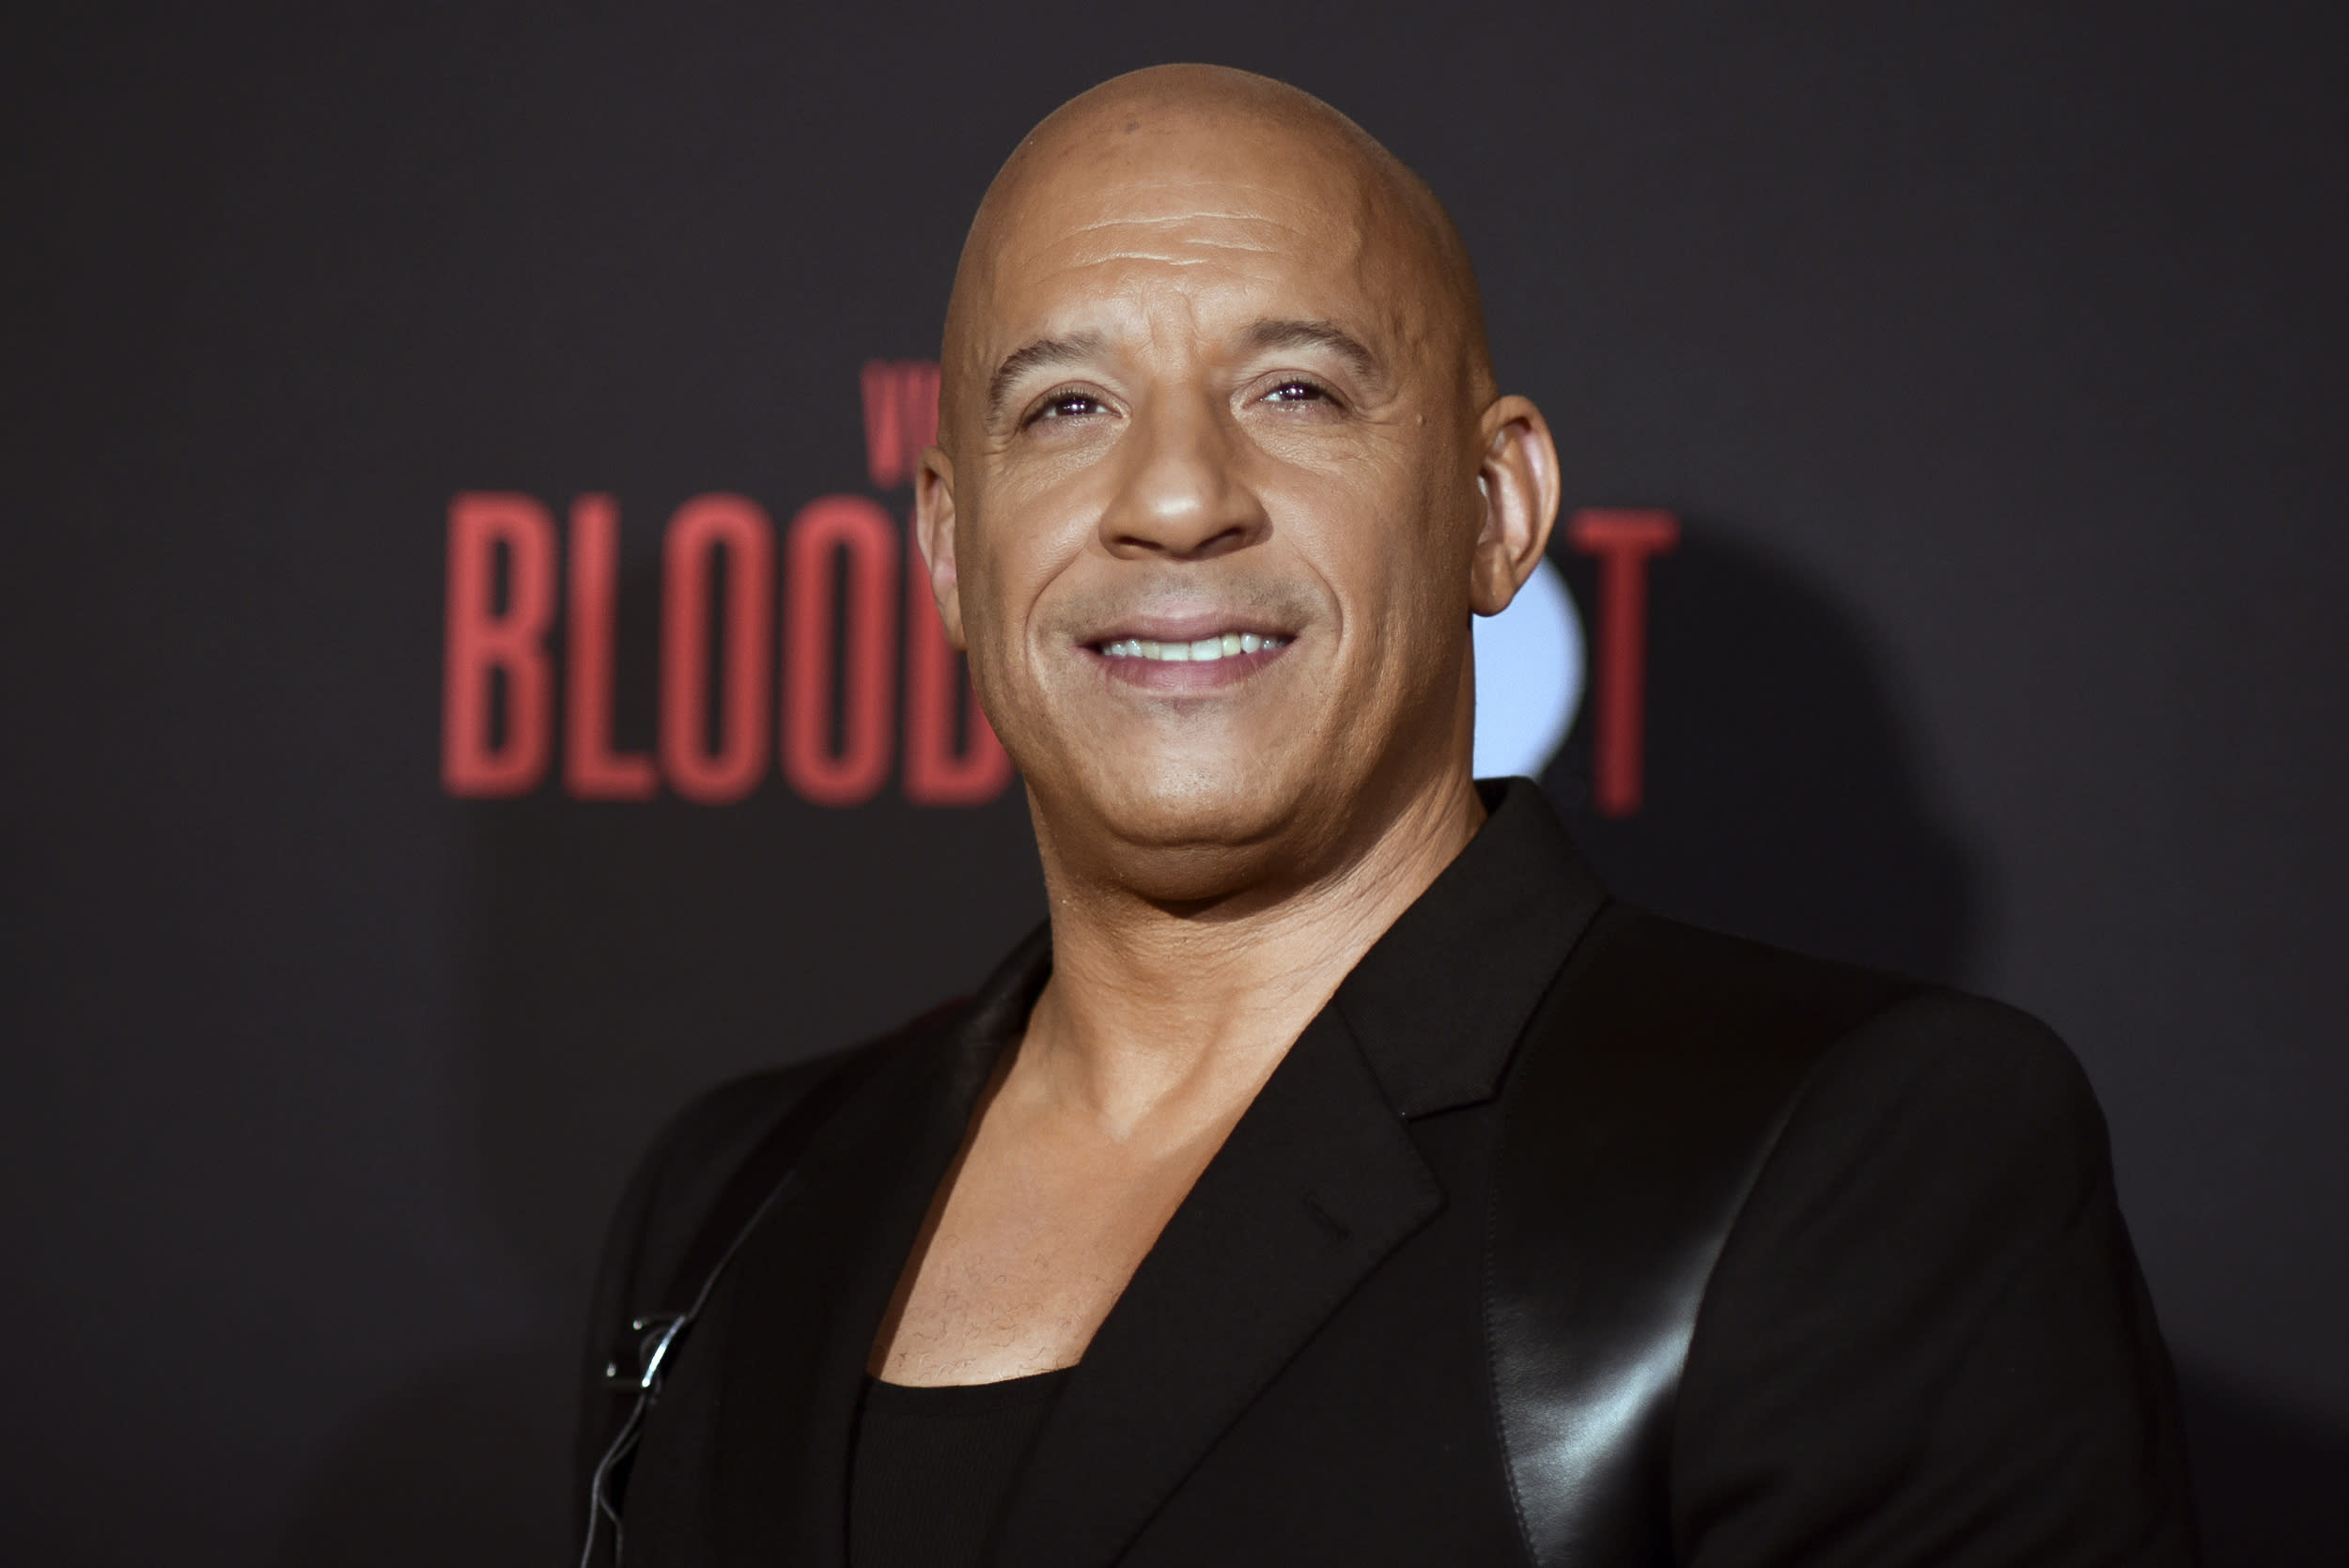 """Vin Diesel attends the LA premiere of """"Bloodshot,"""" at the Regency Westwood Theatre, Tuesday, March 10, 2020, in Los Angeles. (Photo by Richard Shotwell/Invision/AP)"""